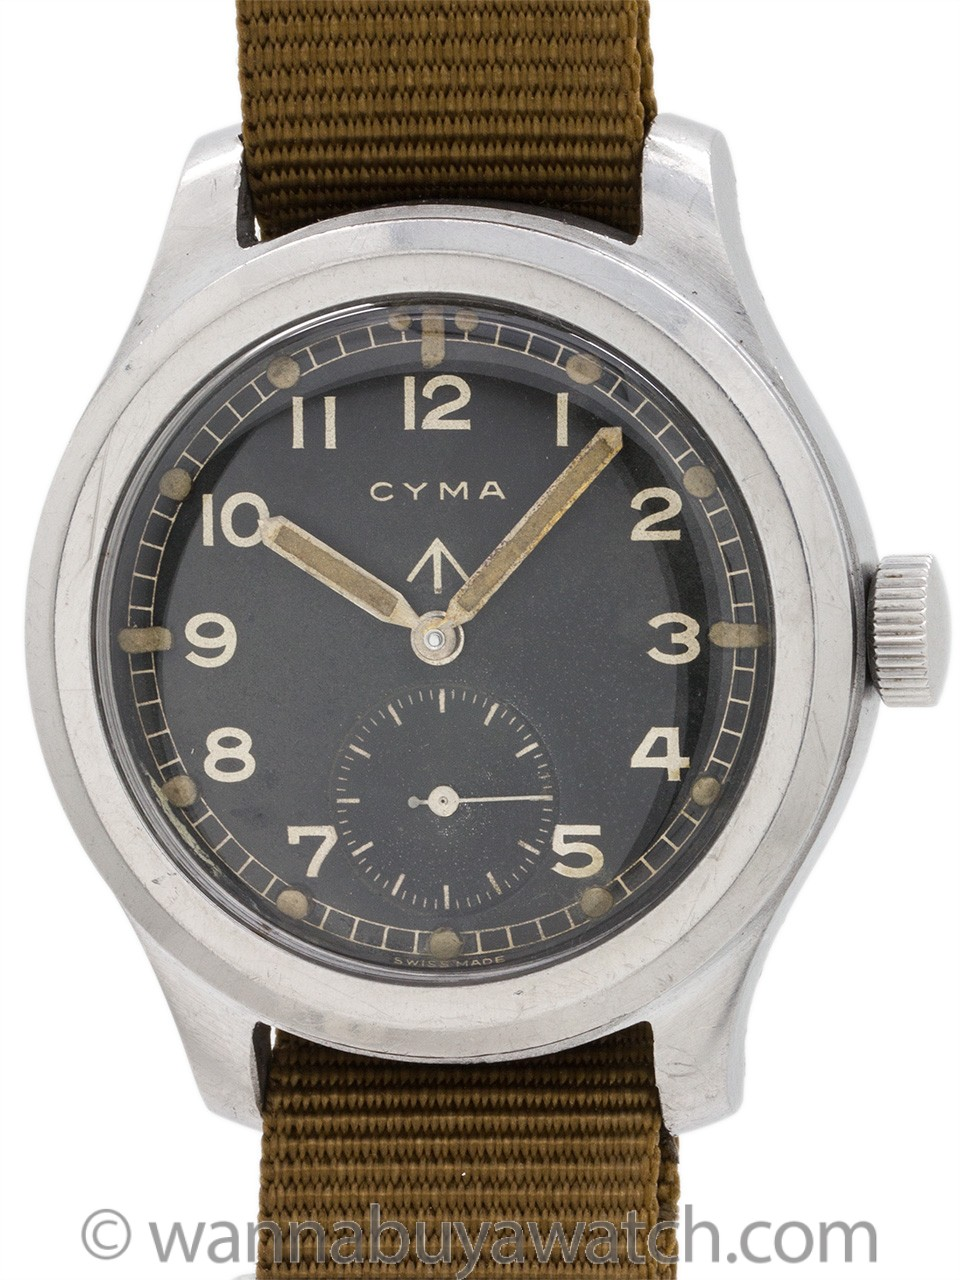 Cyma Tavannes Broad Arrow British Military circa 1940's